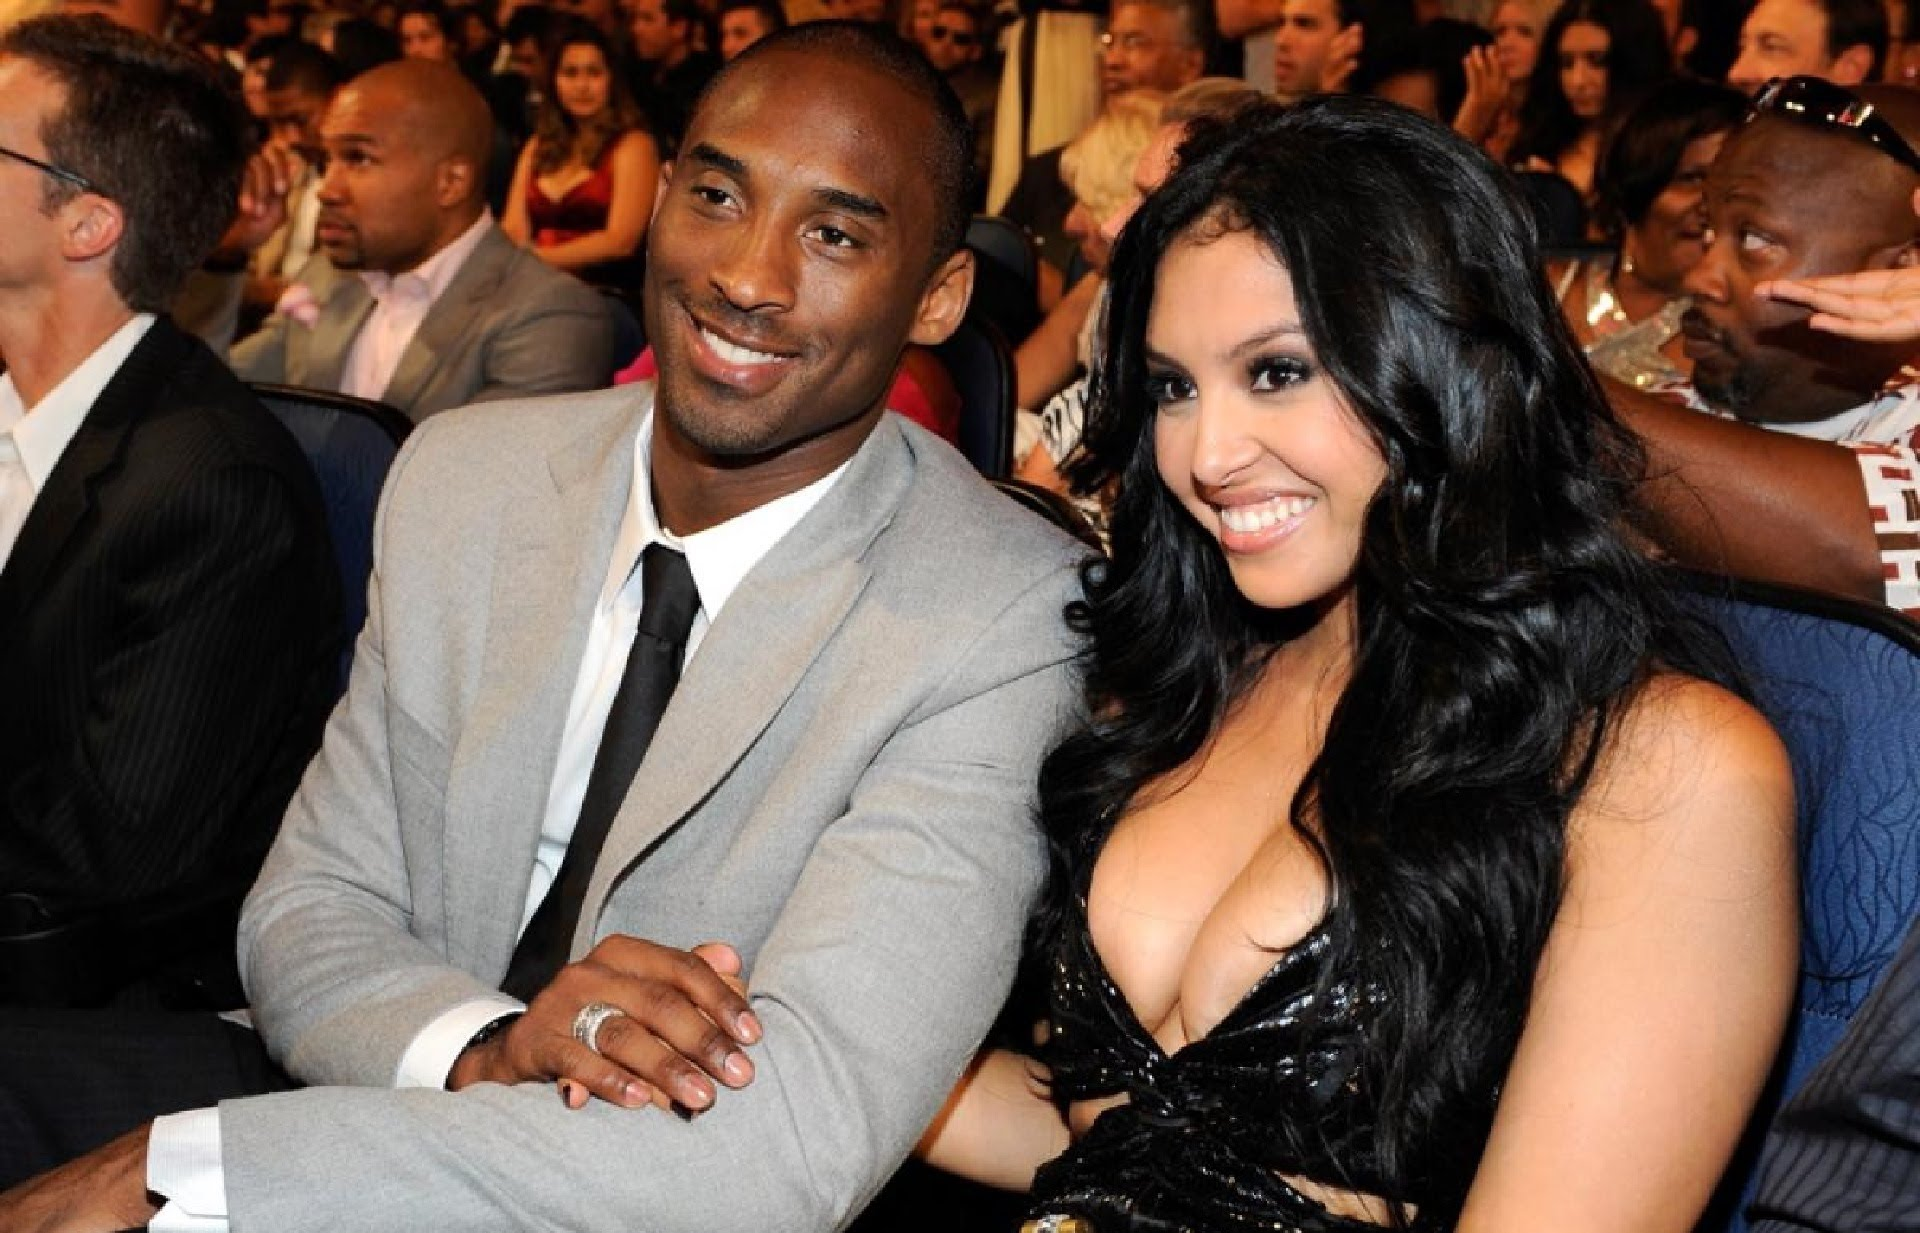 The Richest NBA Players and their Amazing Wives